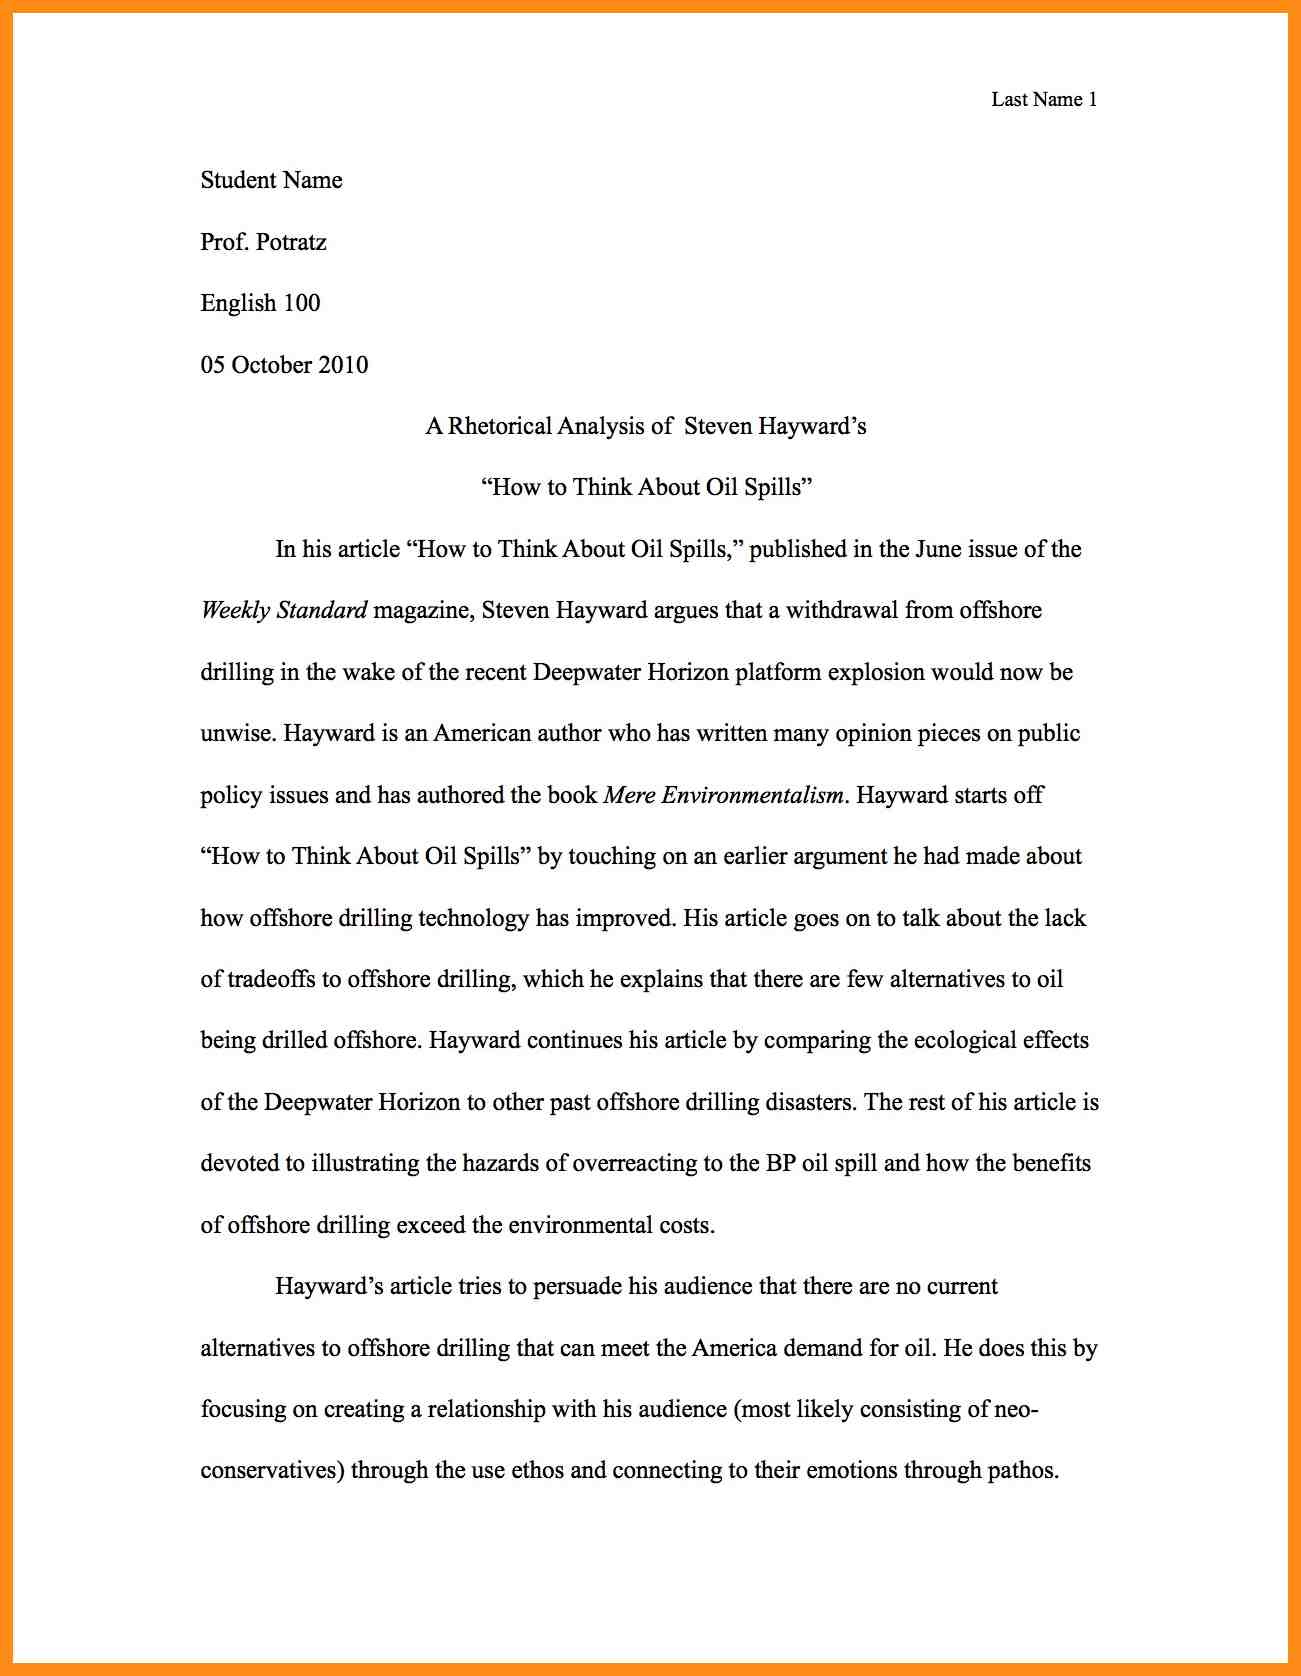 001 Essay Example Rethorical Write Best Rhetorical Analysis Of Using Ethos Pathos And Logos Awful Outline Conclusion Strategies Topics 2018 Full